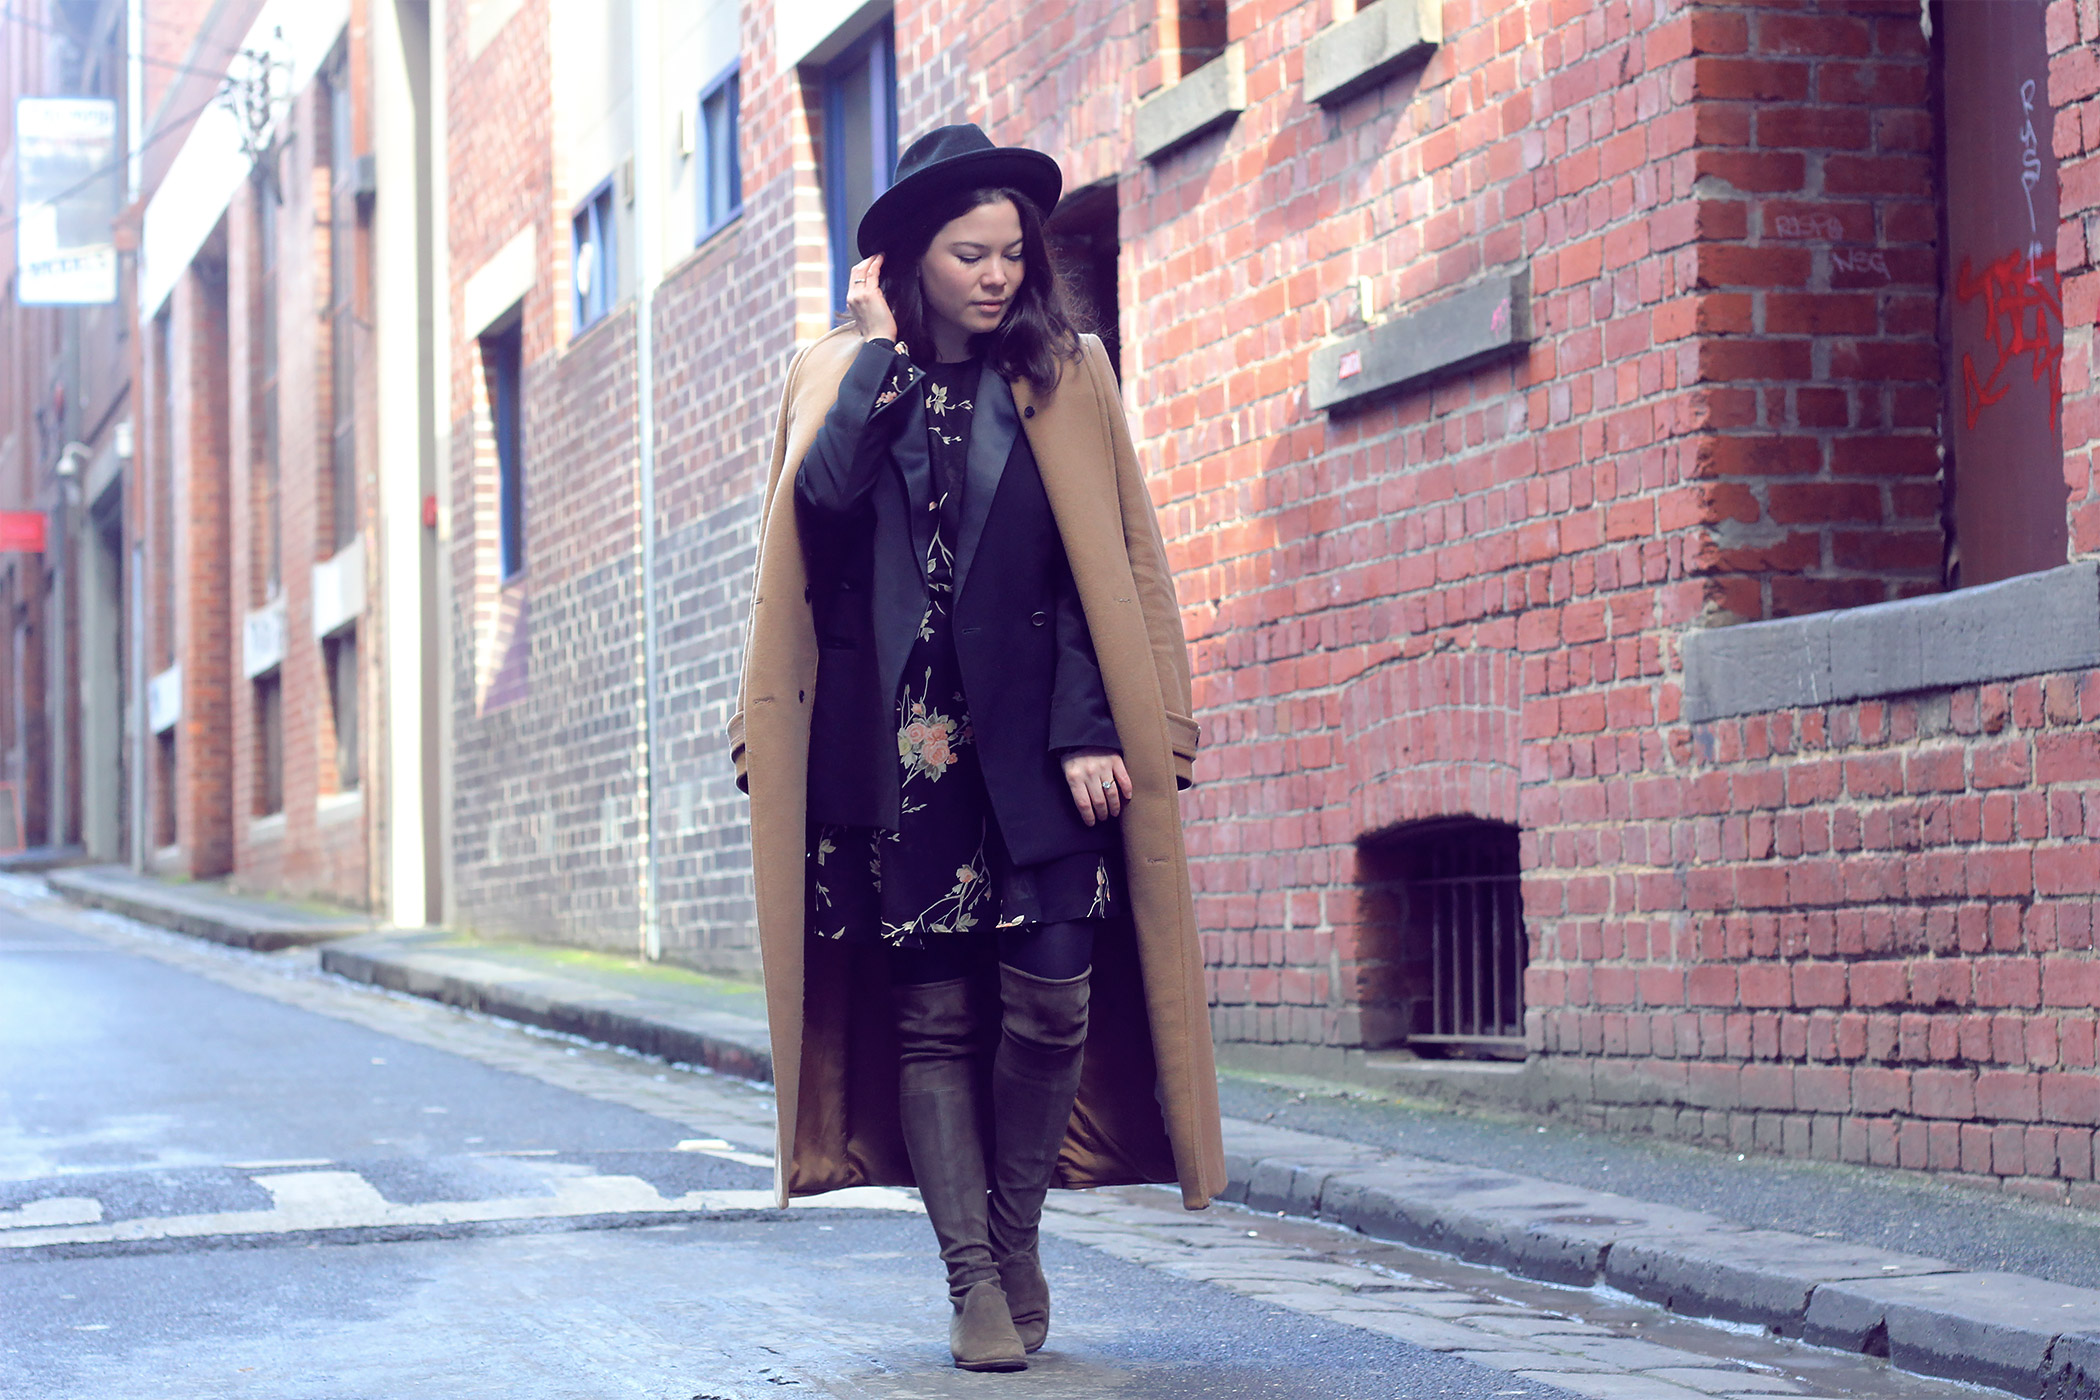 Melbourne Spring Layers Lei lady Lei